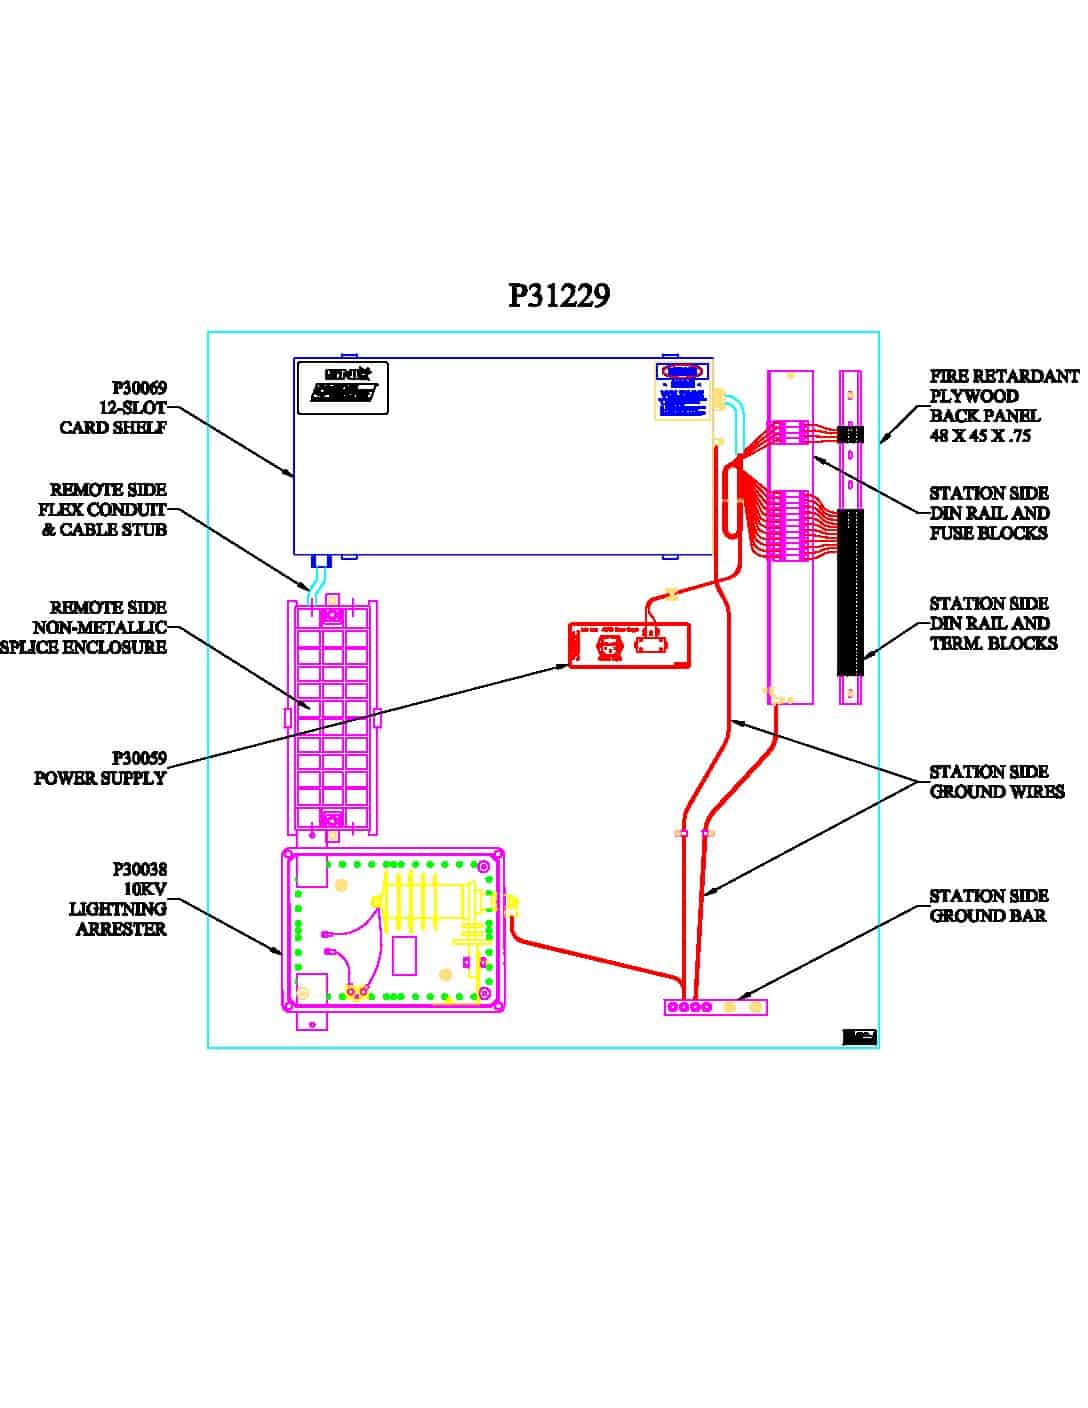 P31229 Turnkey Protection Packages – 12 slot PDF thumbnail